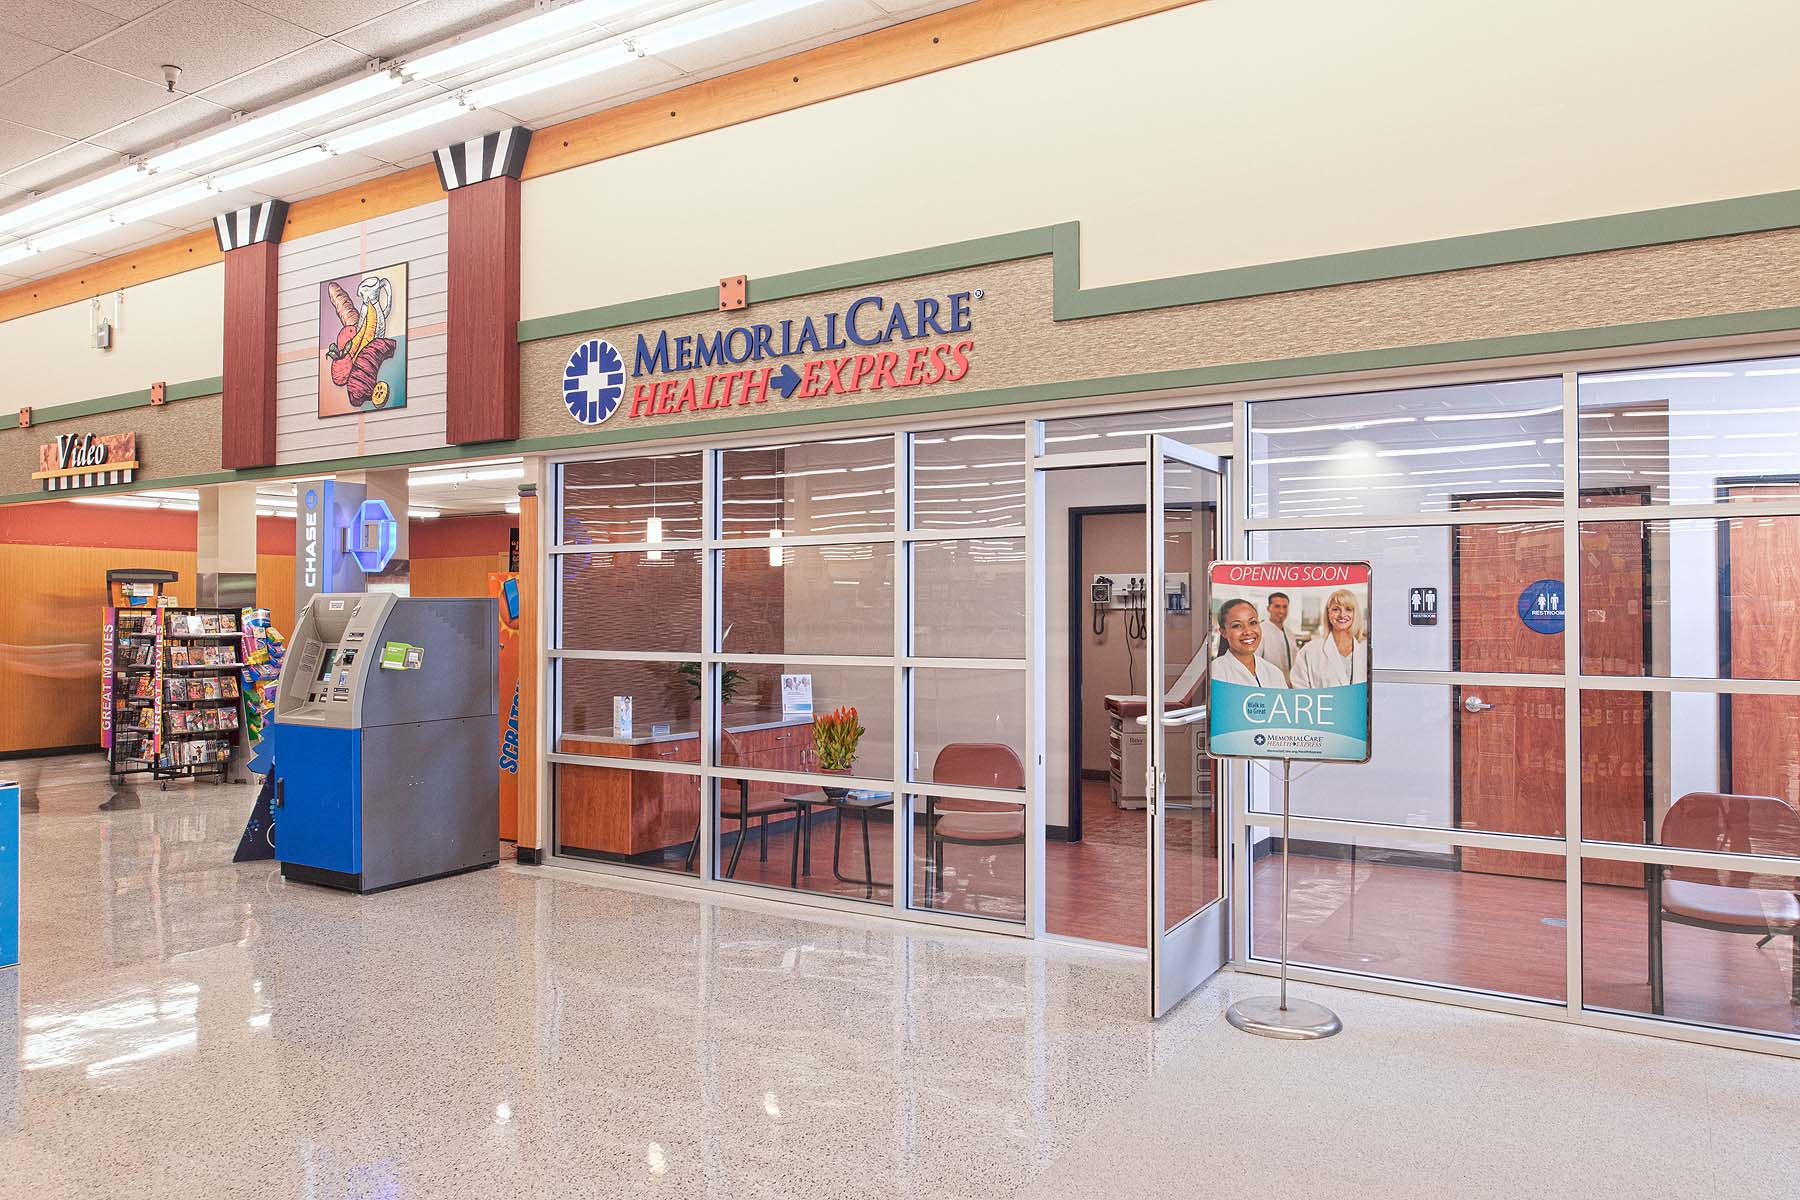 MHS Health Express Clinic Huntington Beach, CA